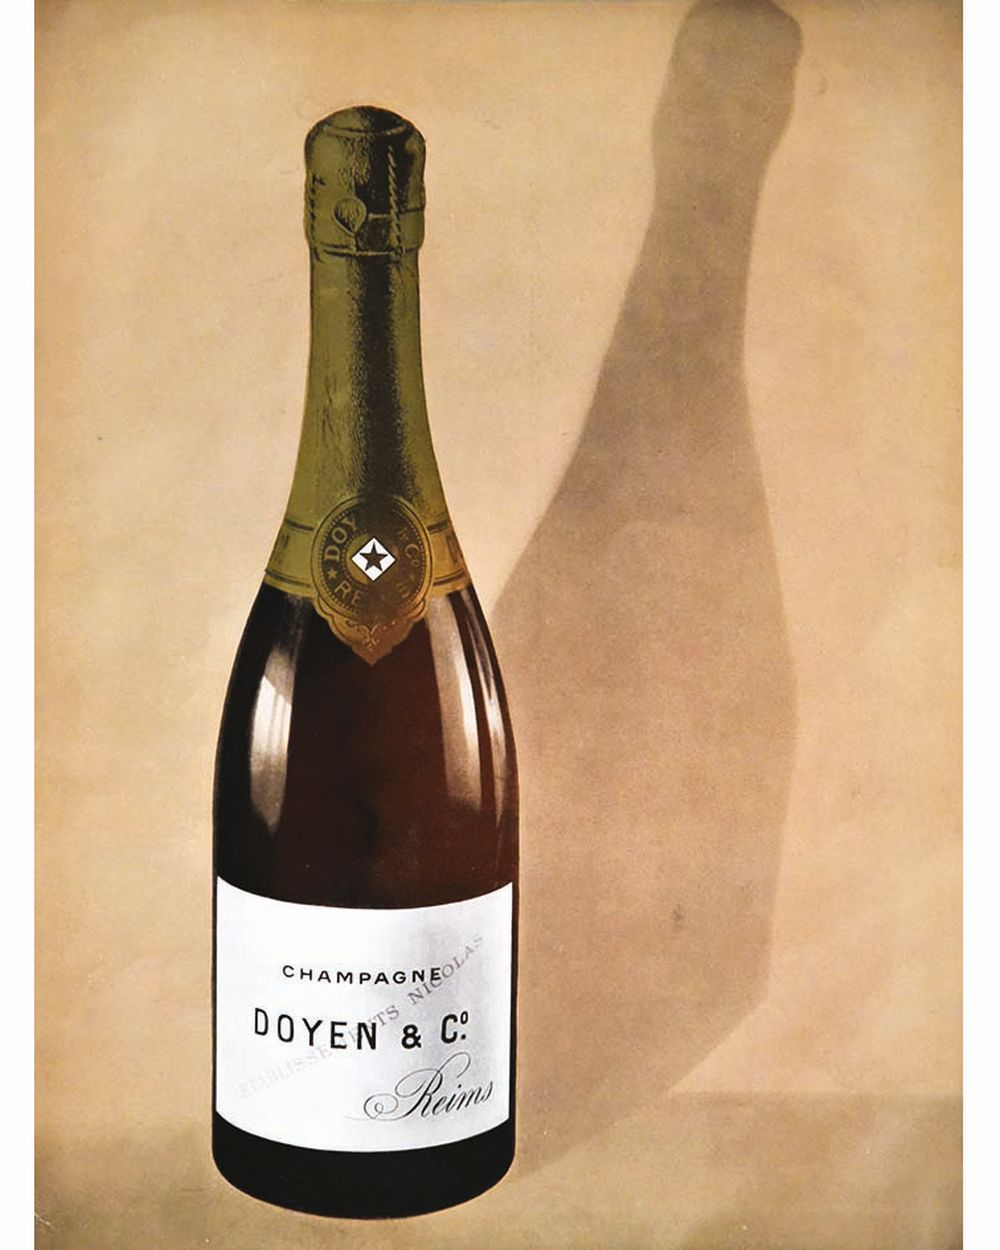 Champagne Doyen & Co     vers 1930  Reims (Marne)